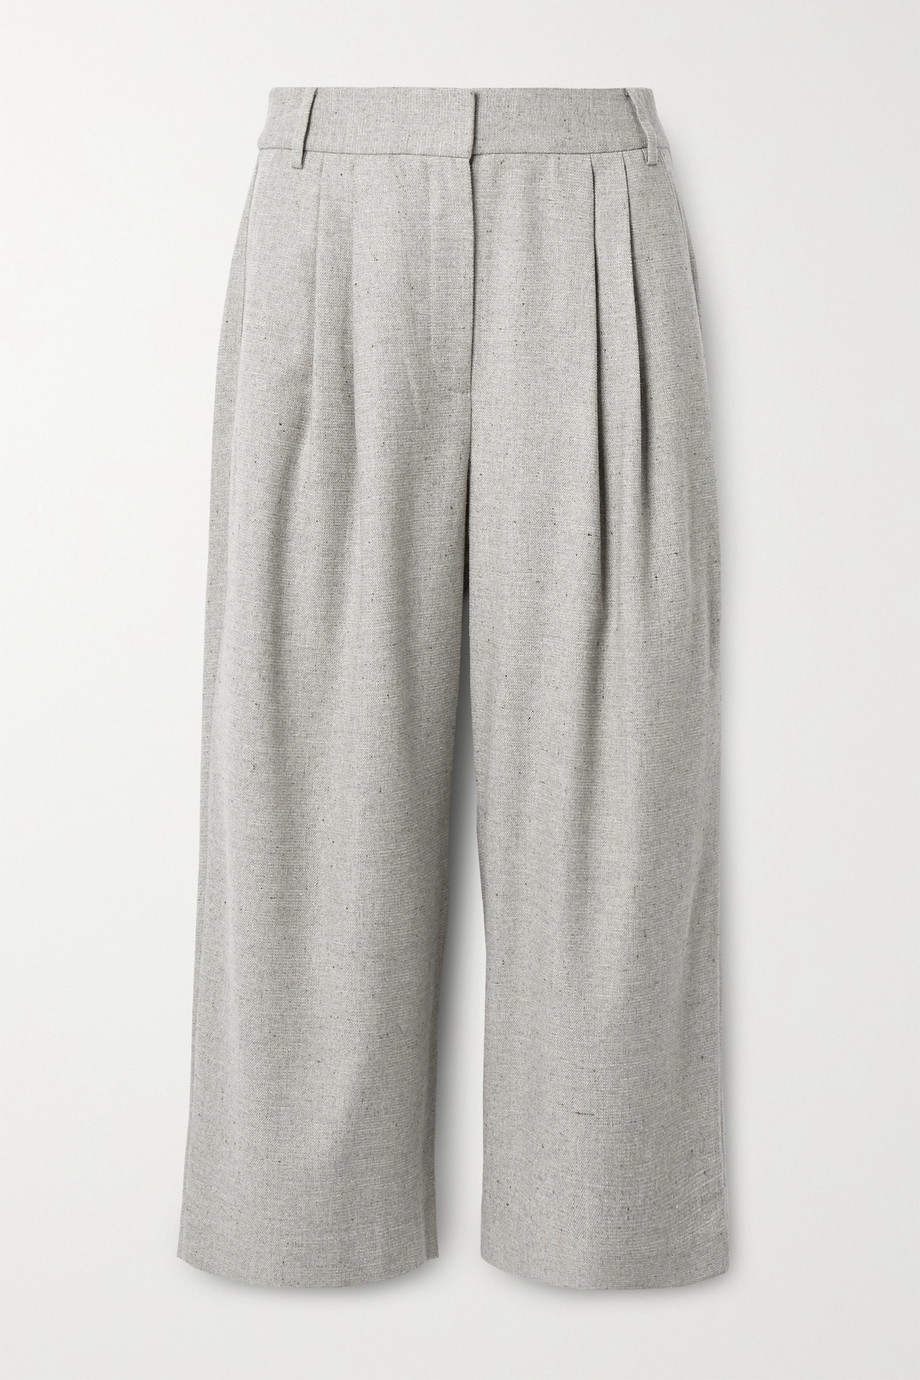 Tibi Lola pleated tweed culottes